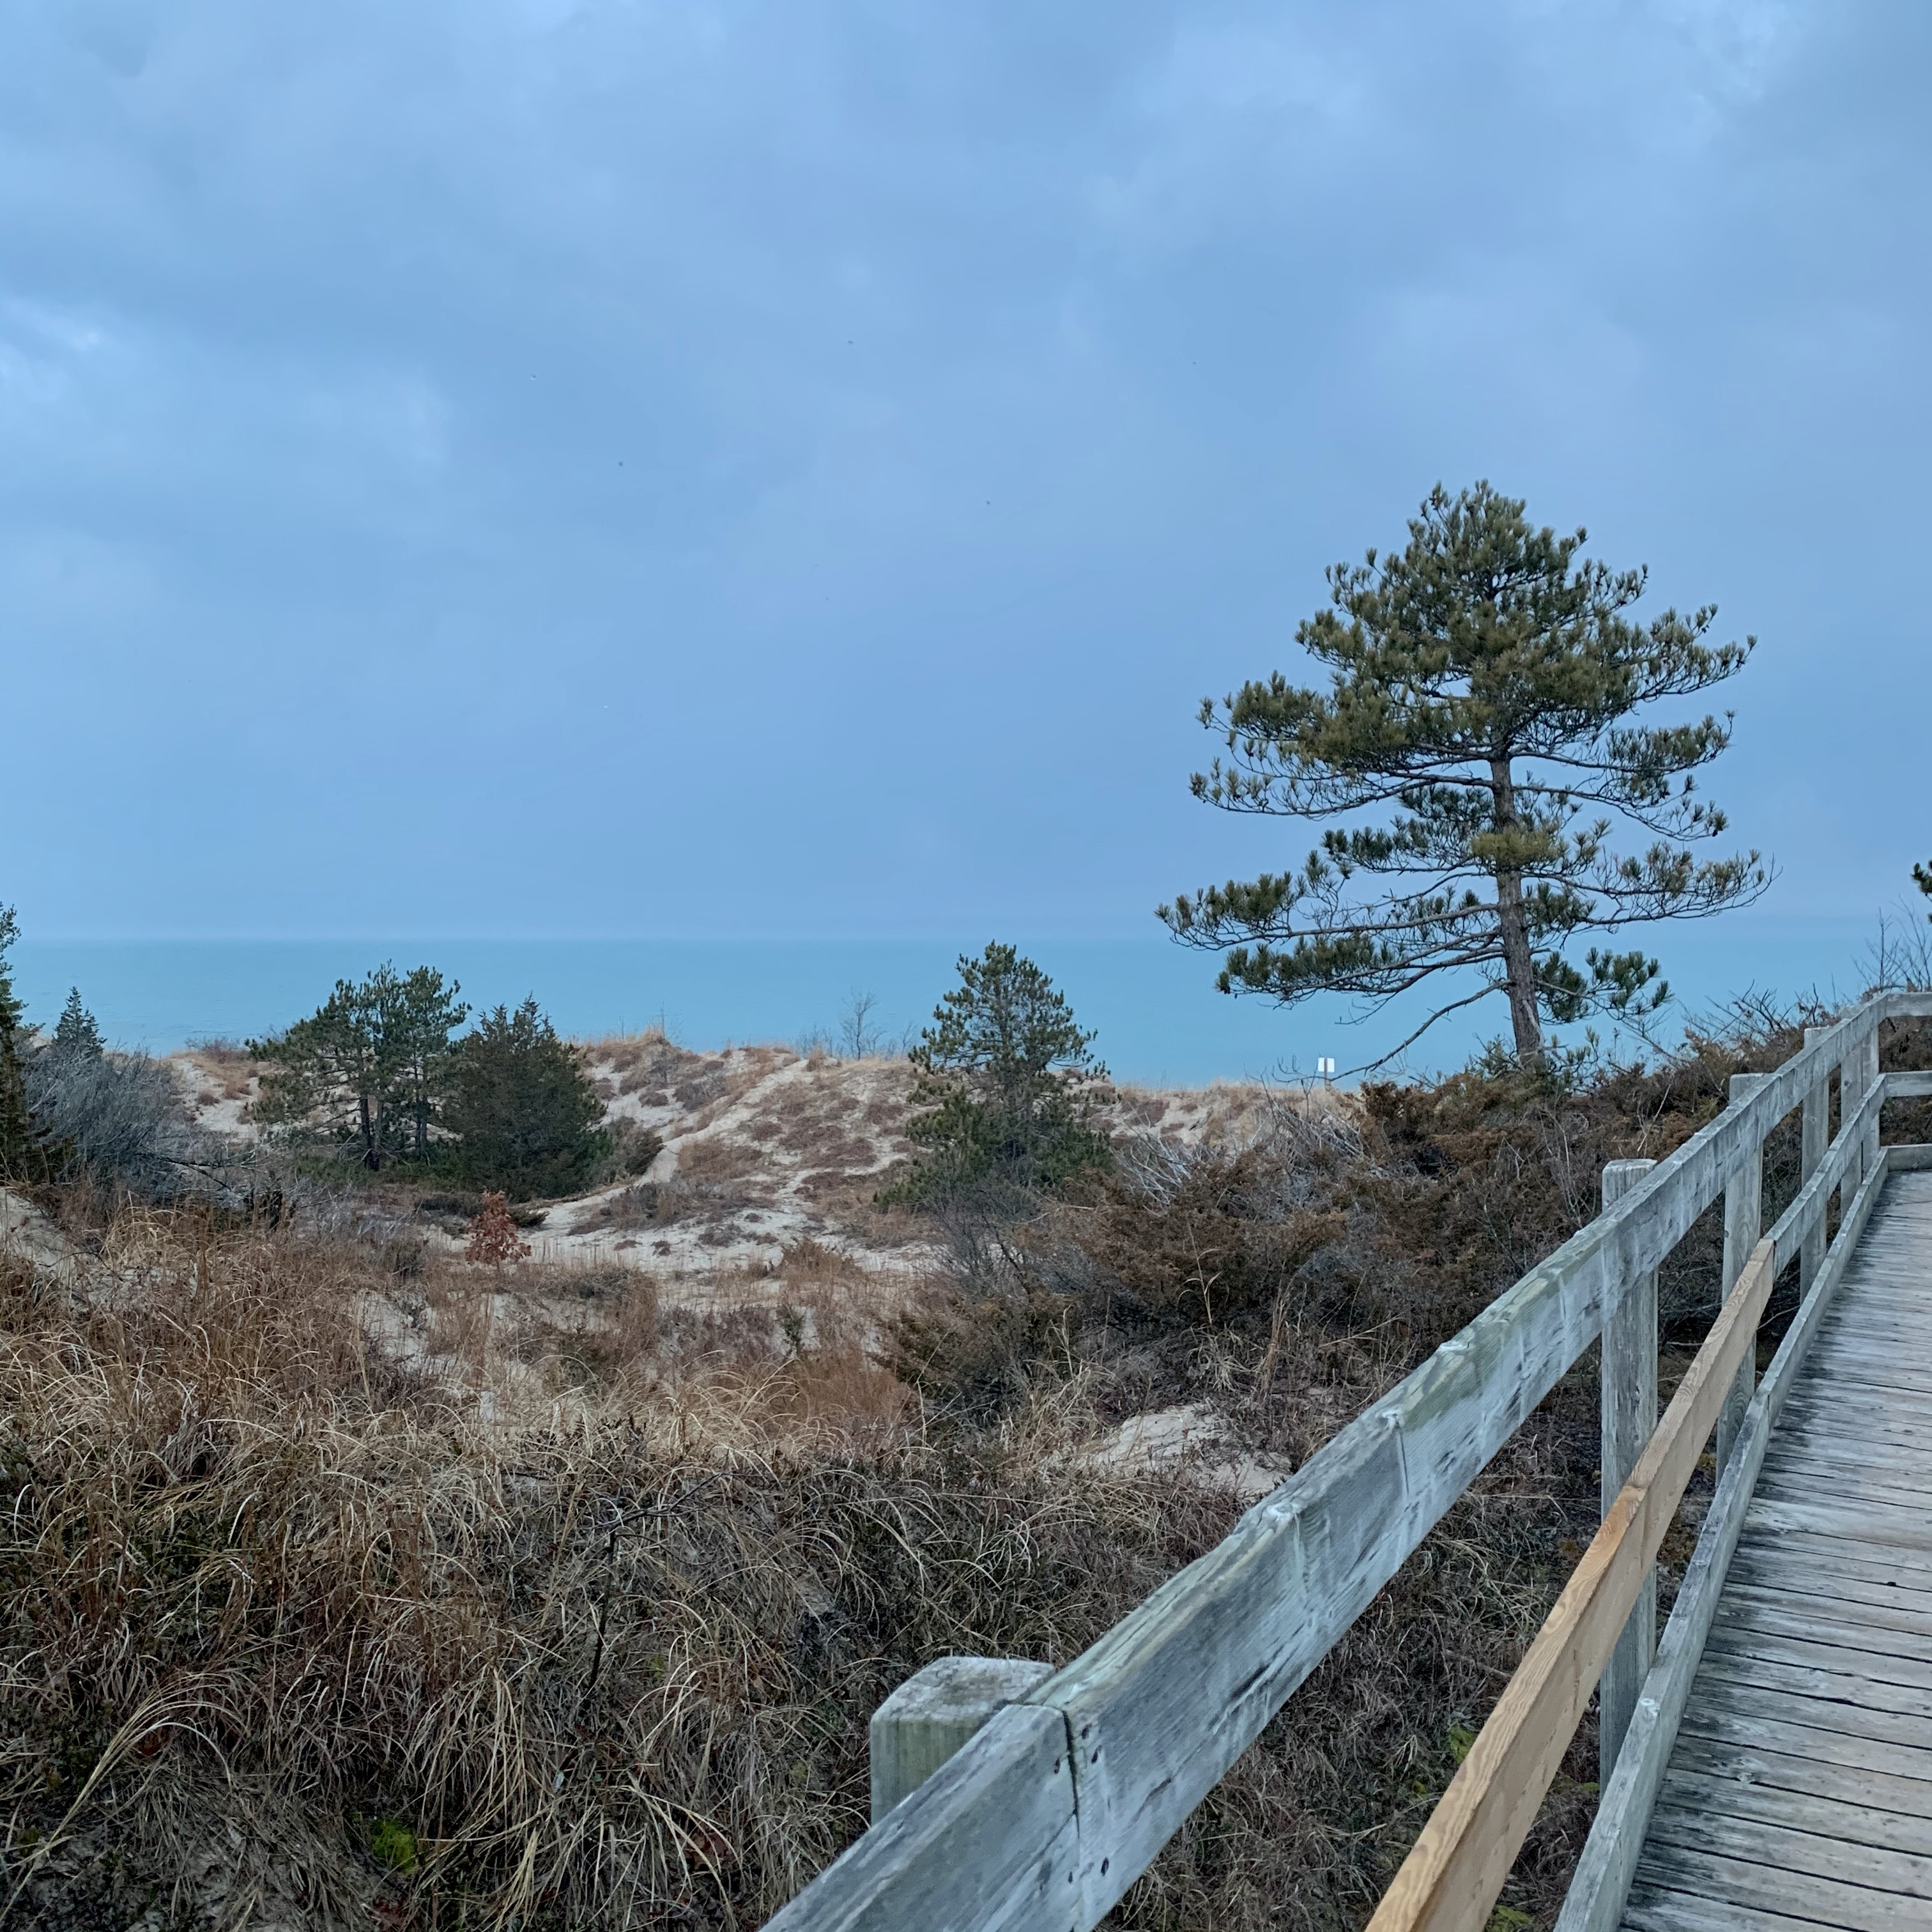 boardwalk, sand, trees, and water in the distance